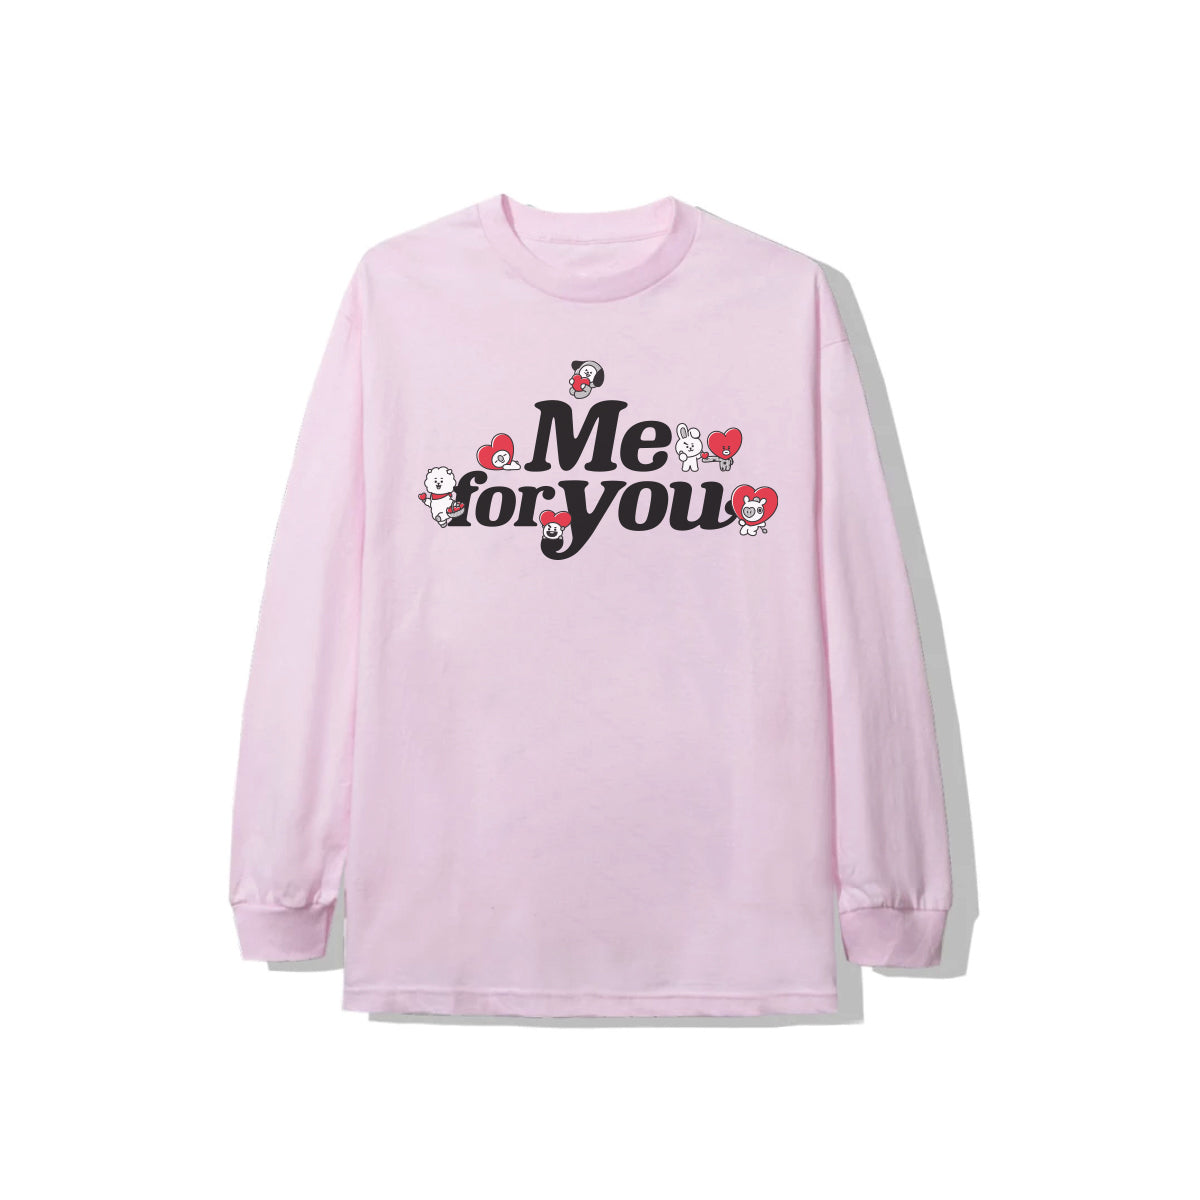 With Love Long Sleeve - Light Pink